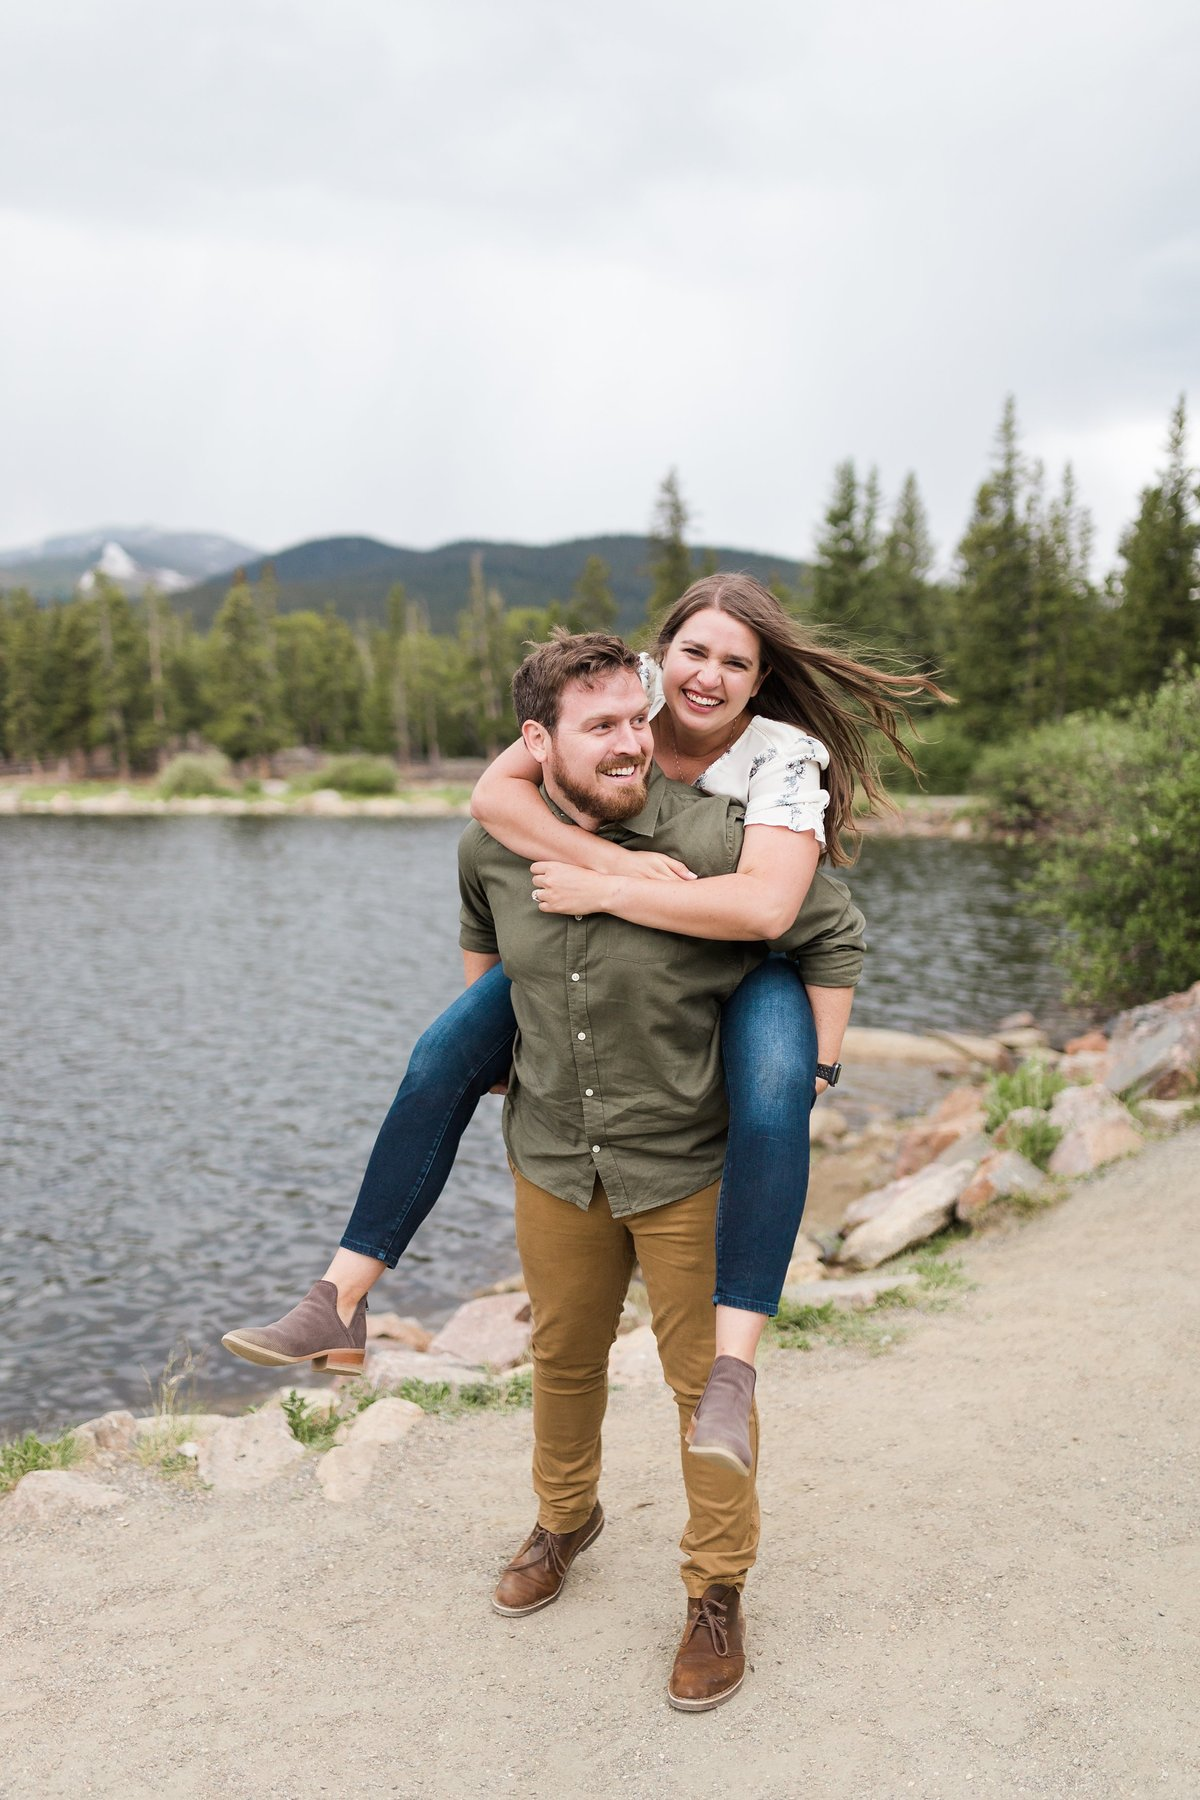 Engagement photos in Denver CO